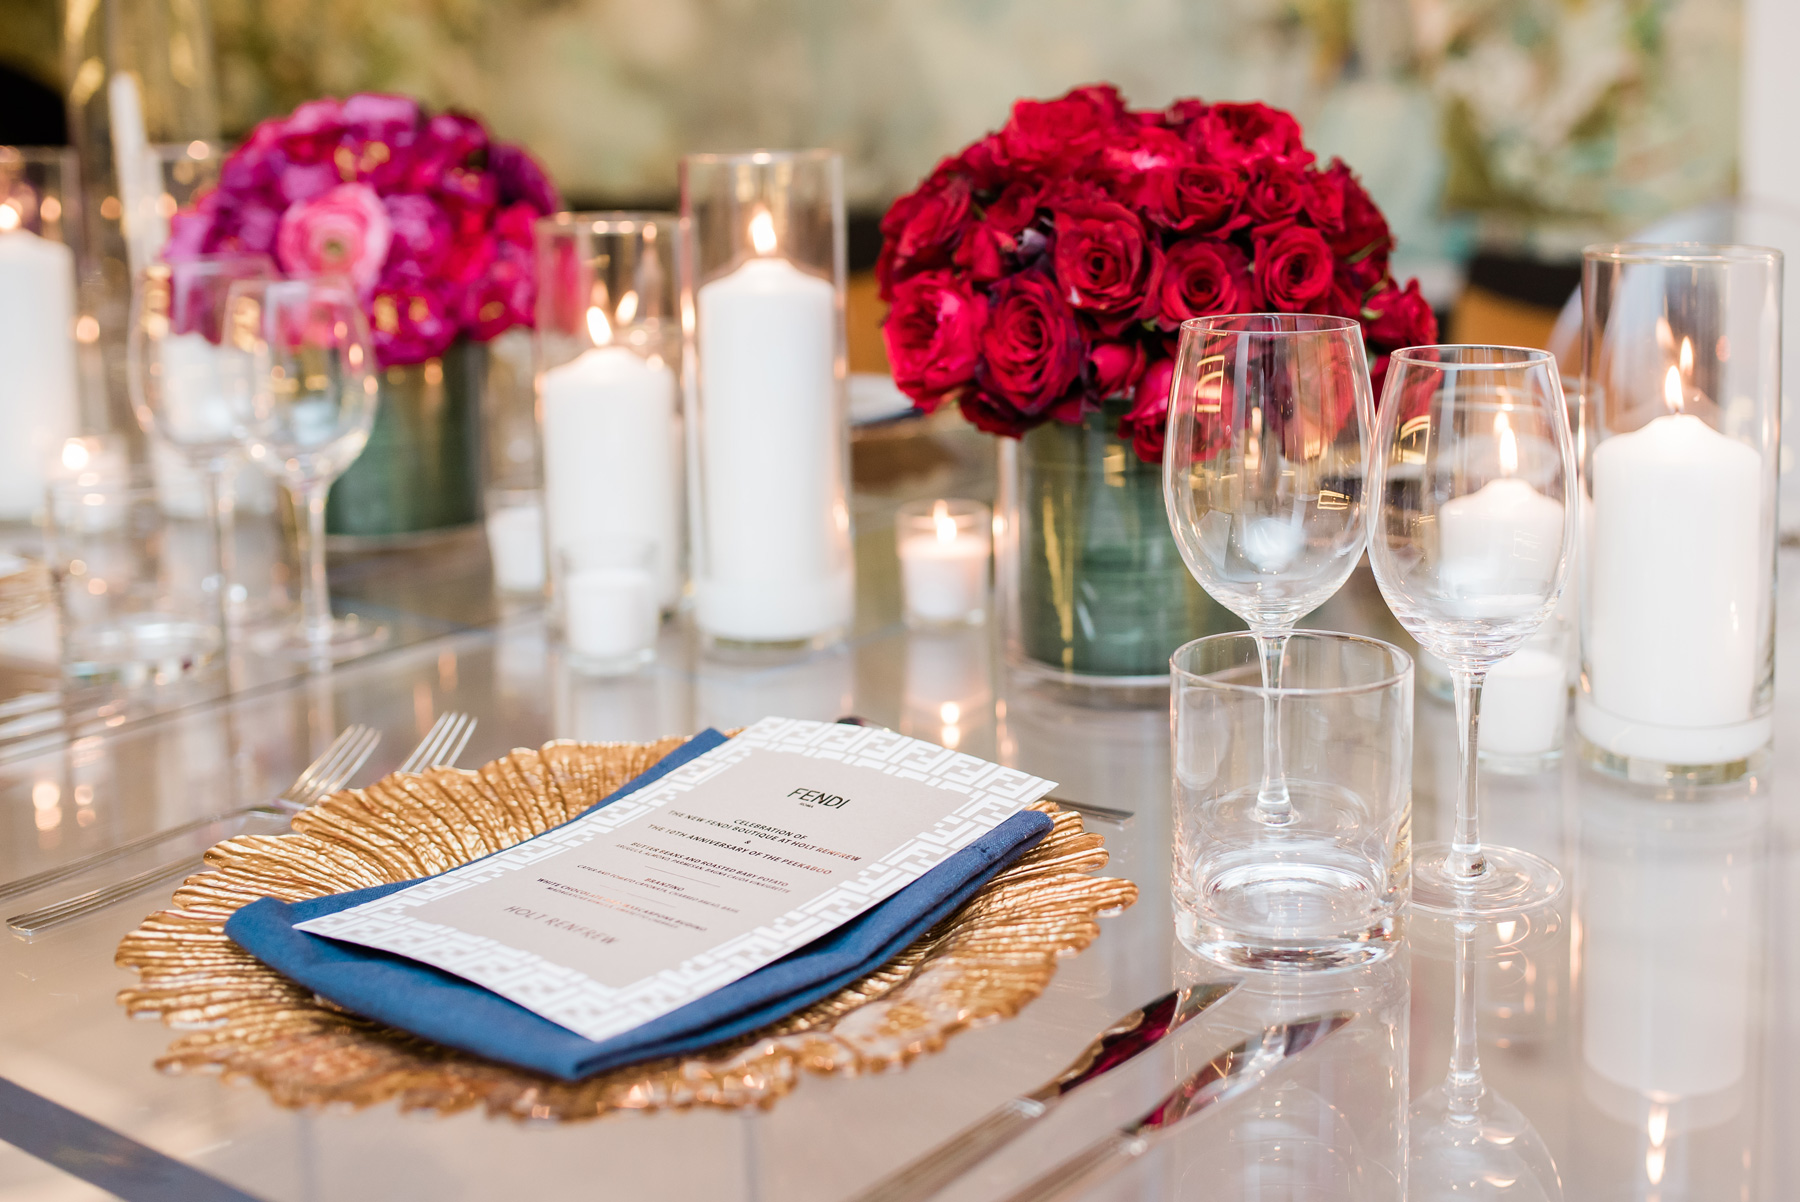 acrylic table top with vibrant monochromatic colors centerpieces